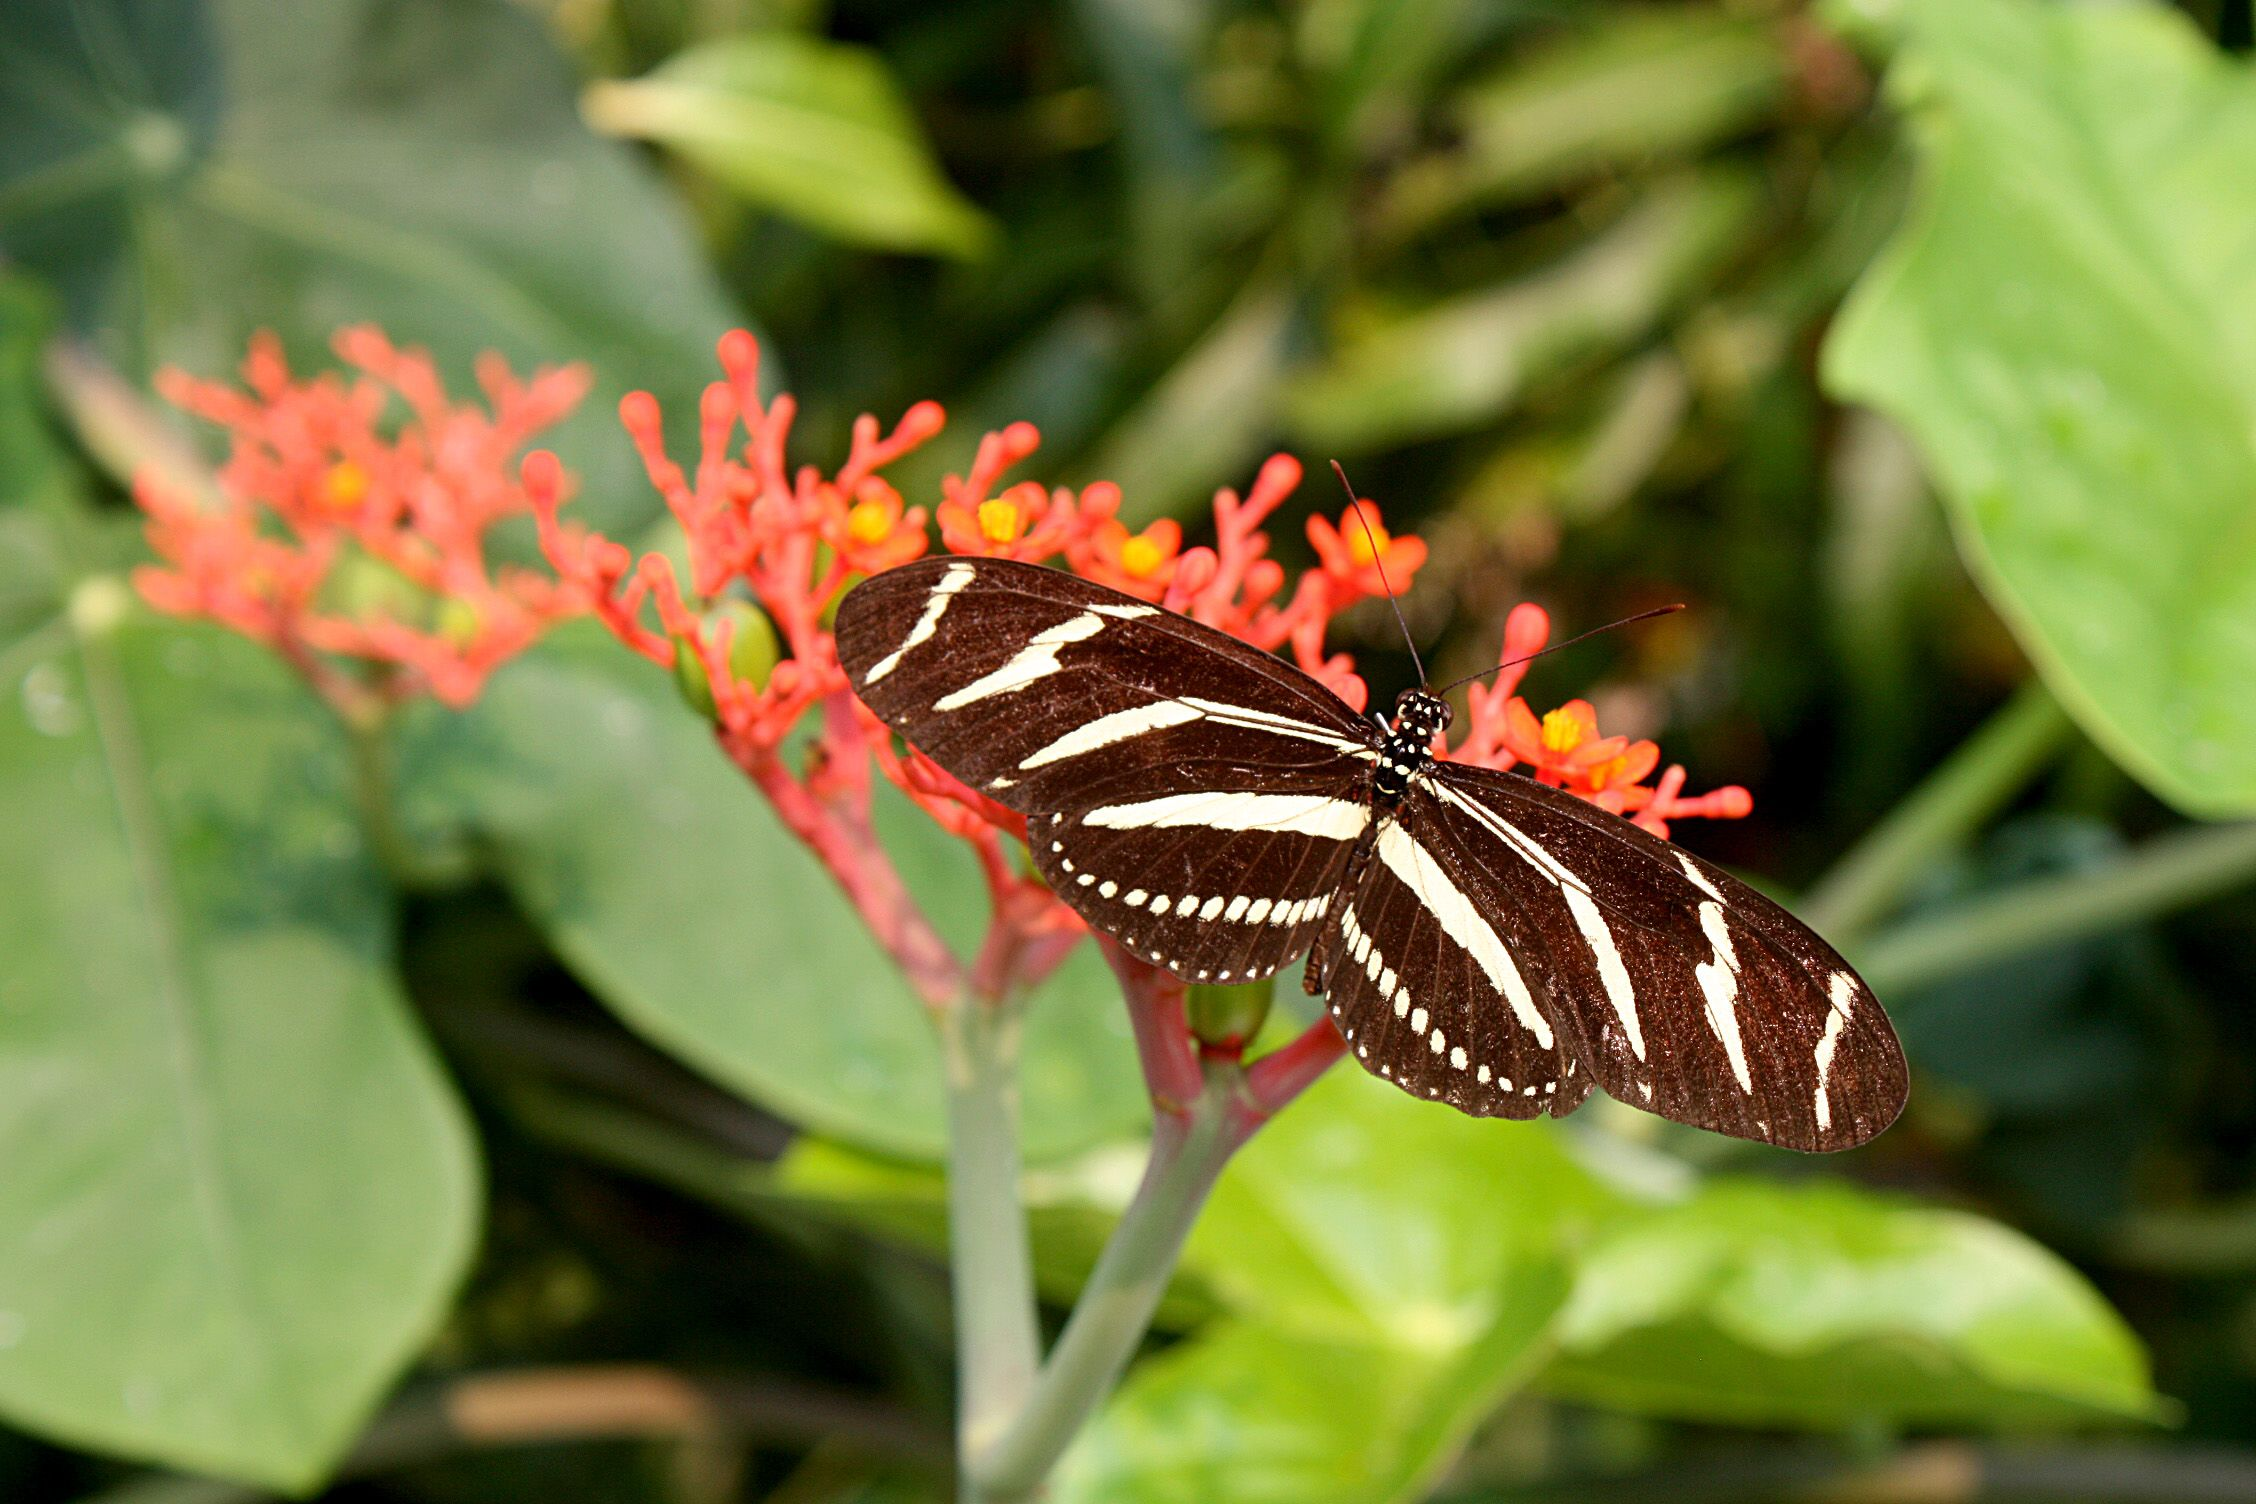 Zebra Longwing Butterfly On Buddha Belly Plant Plant Leaves Plants Flowers